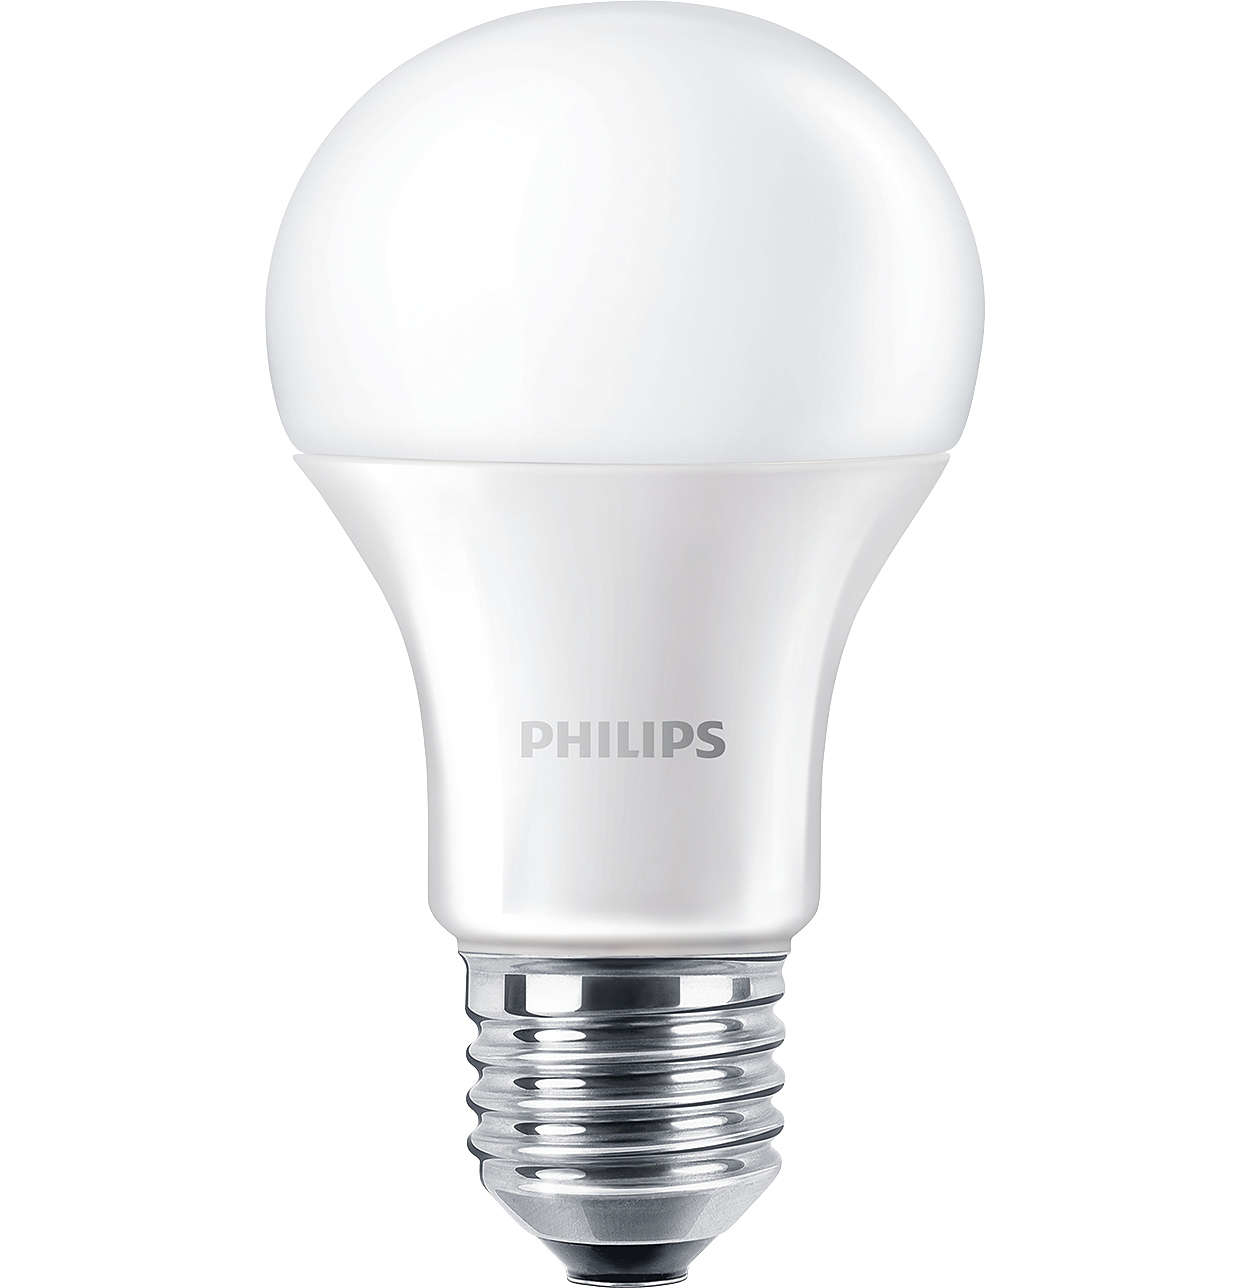 Philips - Lampadina LED - Core75840